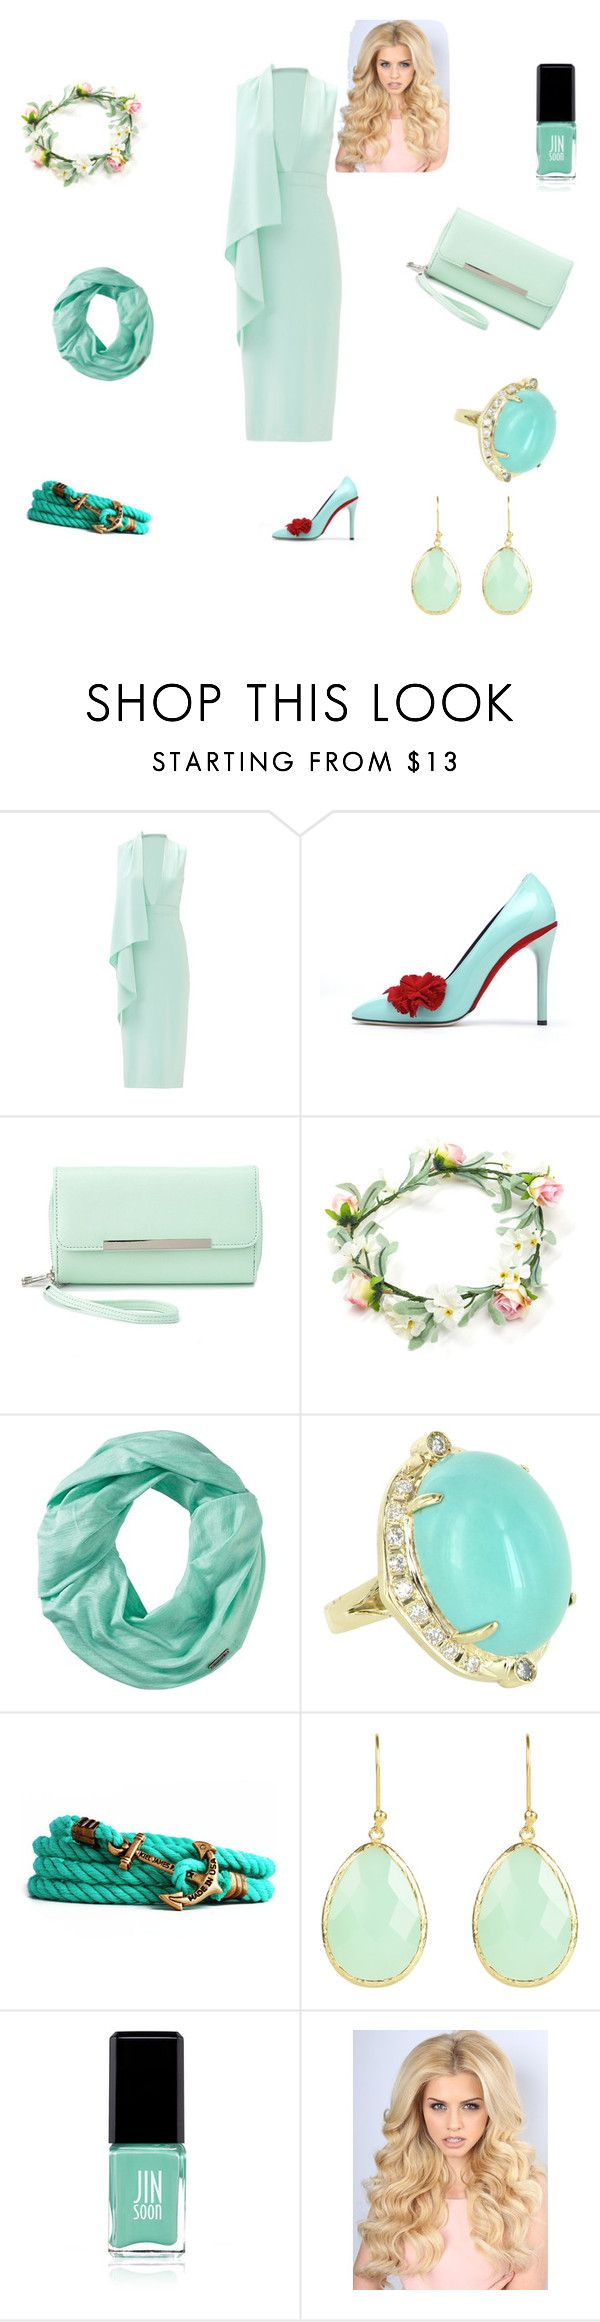 """Go green"" by princessgrace203 ❤ liked on Polyvore featuring Cushnie Et Ochs, Oscar de la Renta, Charlotte Russe, Smartwool, Vintage, Kiel James Patrick and JINsoon"